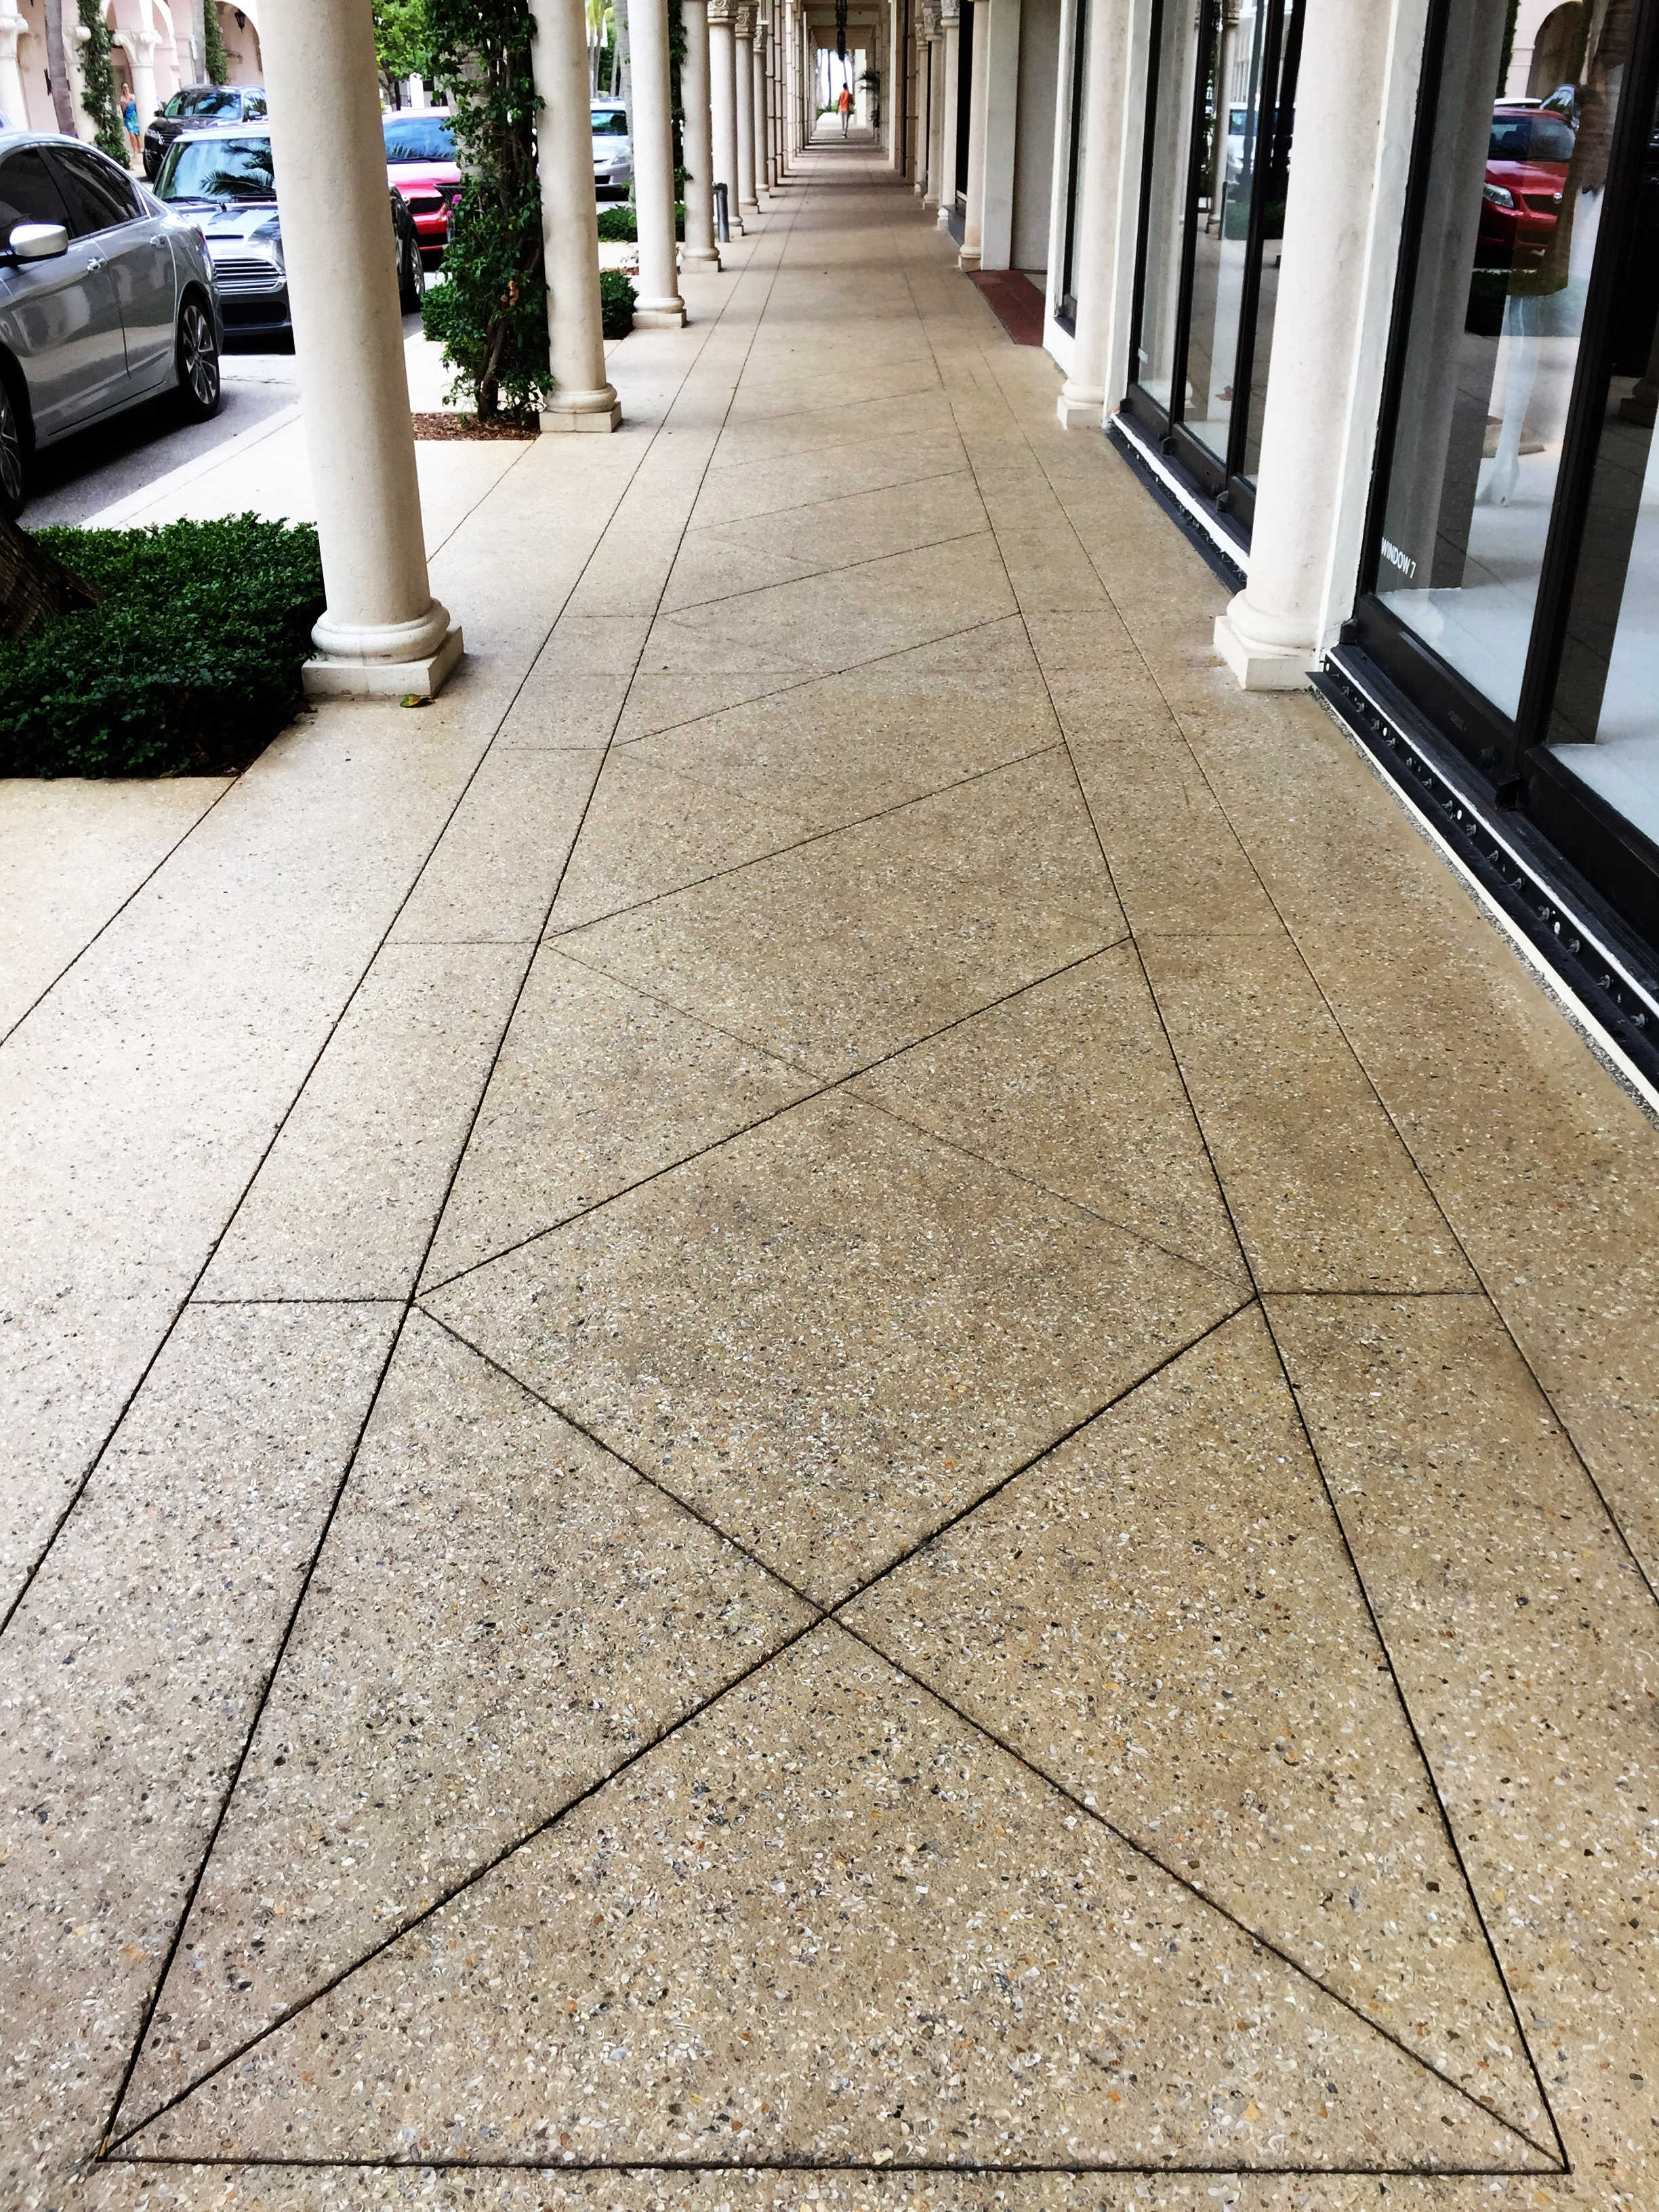 Limestone Walkway - Worth Ave - High-end shopping - Palm beach